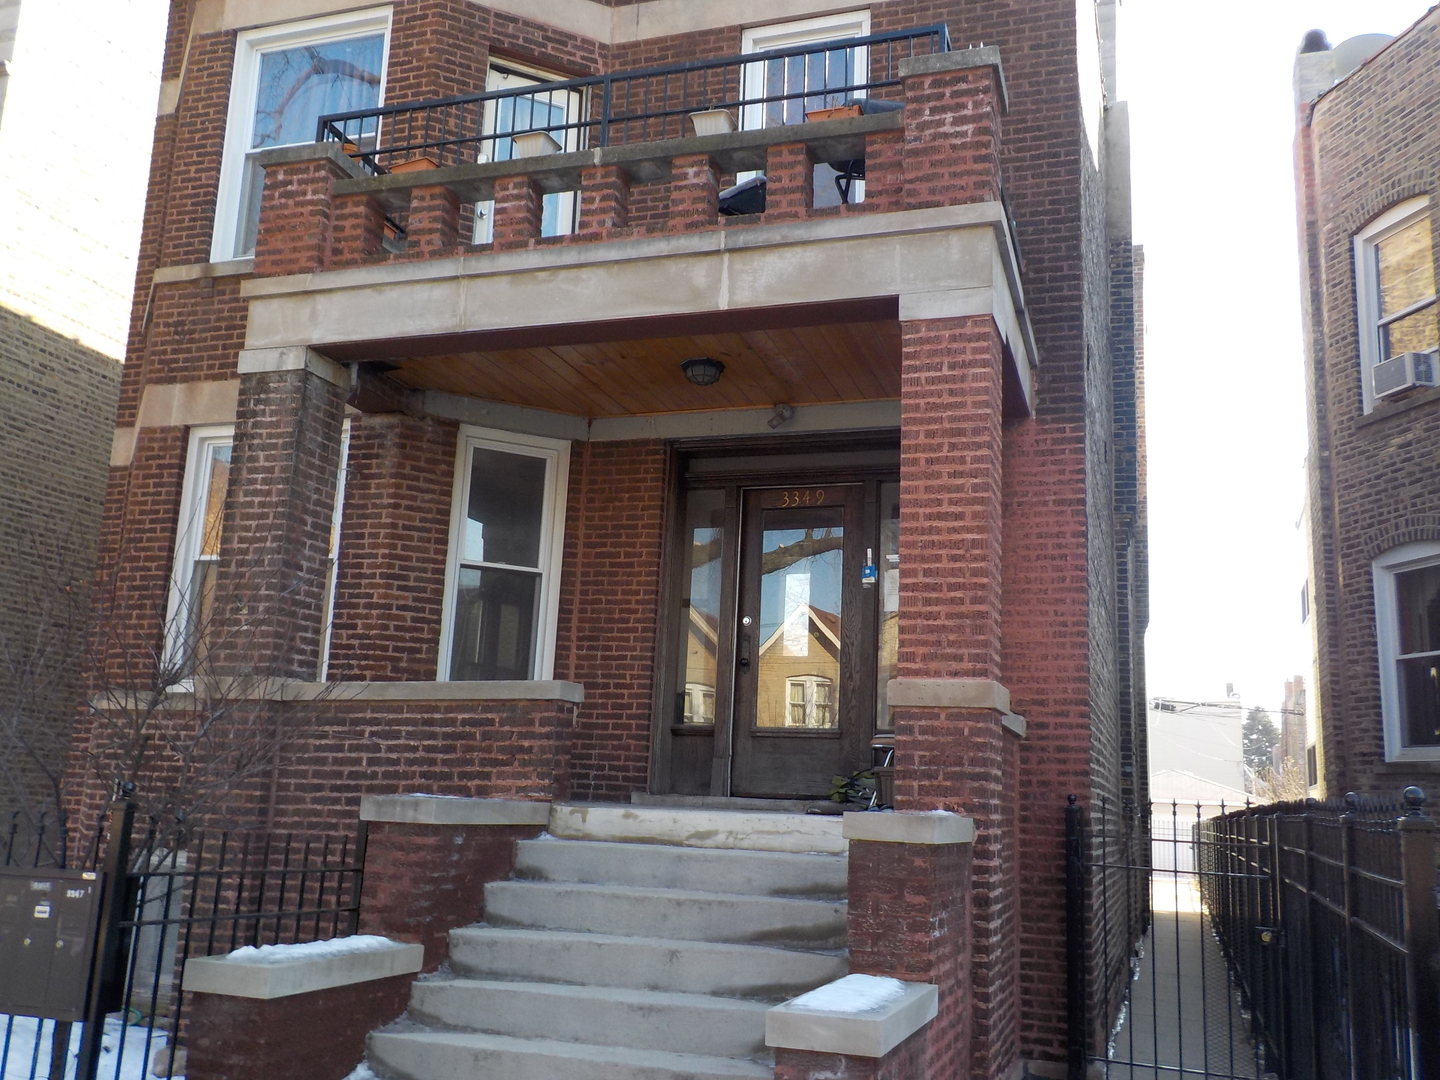 3347-49 West Pierce, Chicago, Illinois, 60651